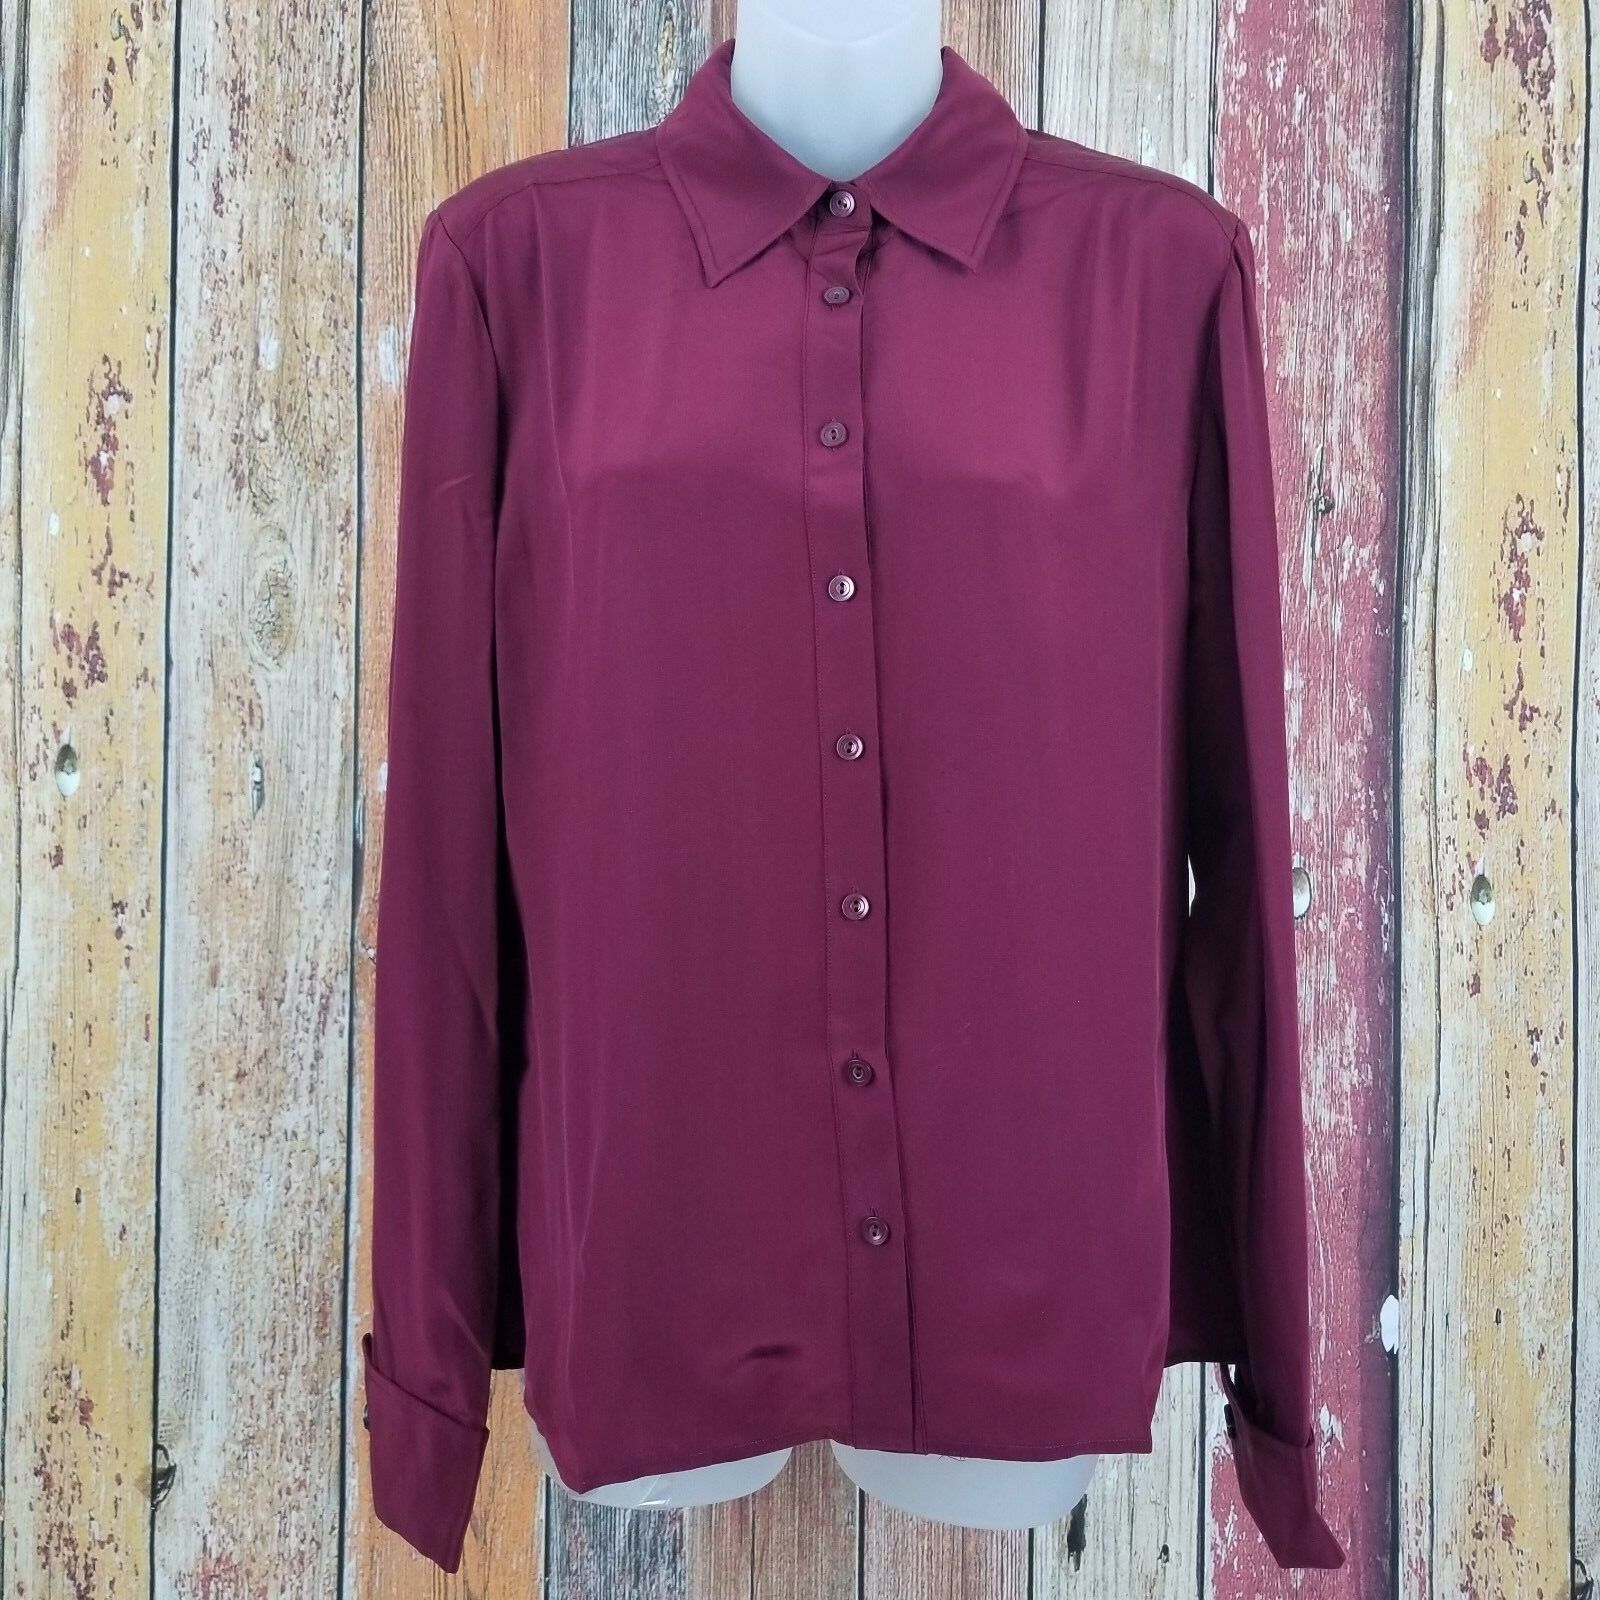 NWT  St. John Collection Women's Maroon 100% Silk Oxford Blouse Size 8